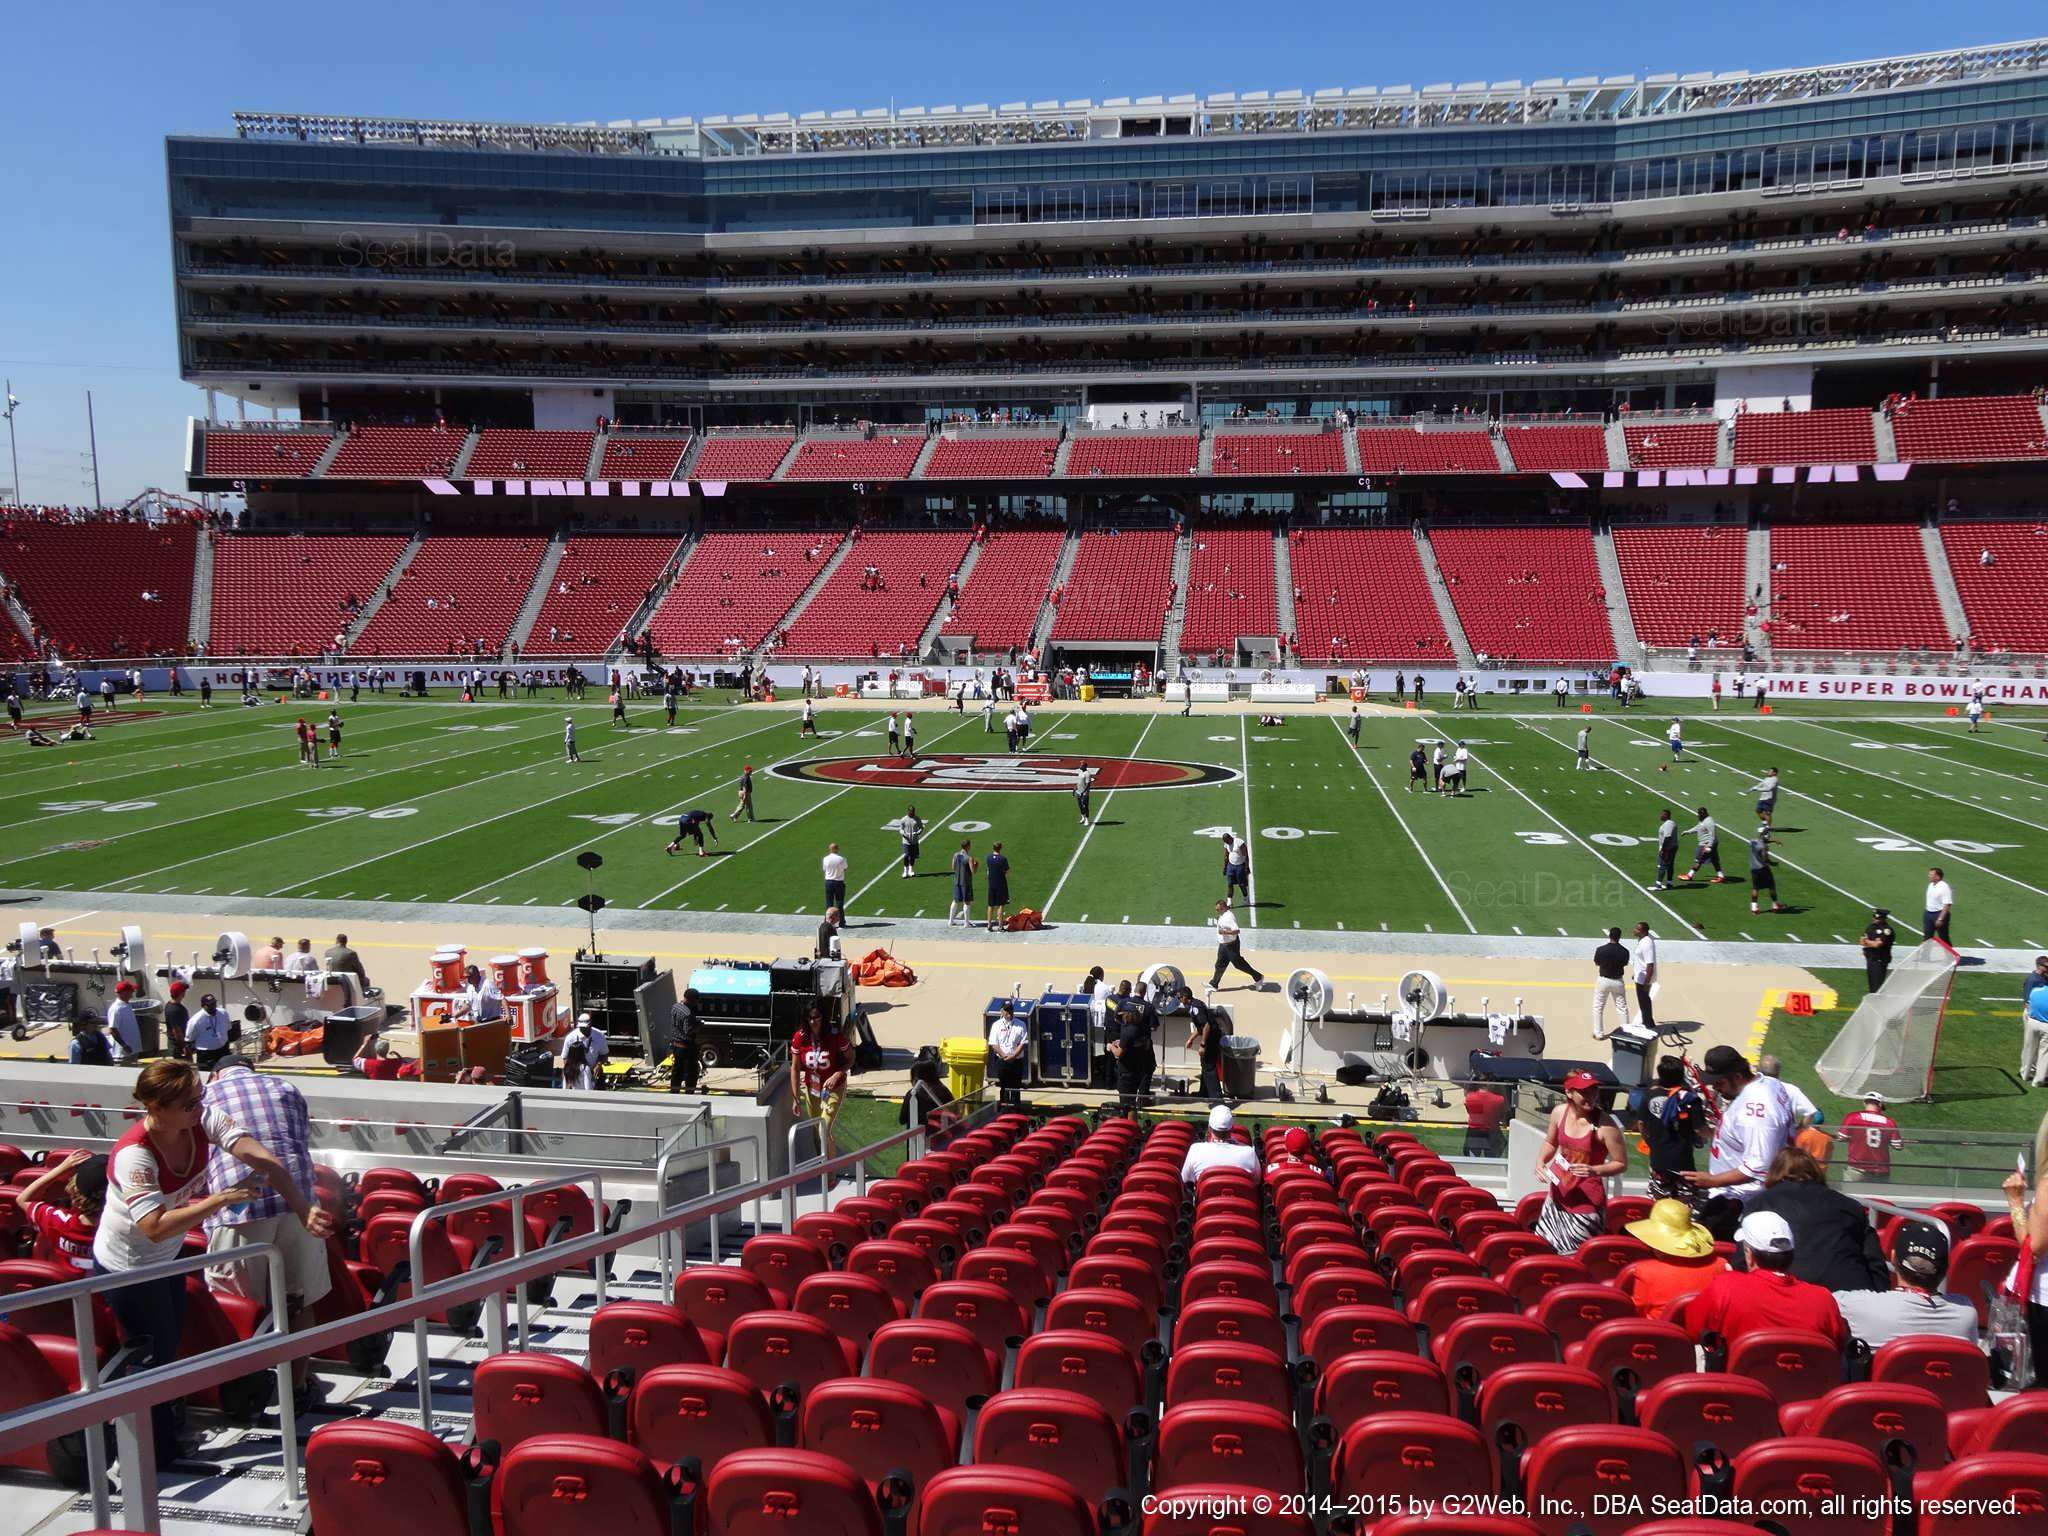 Seat view from section 114 at Levi's Stadium, home of the San Francisco 49ers